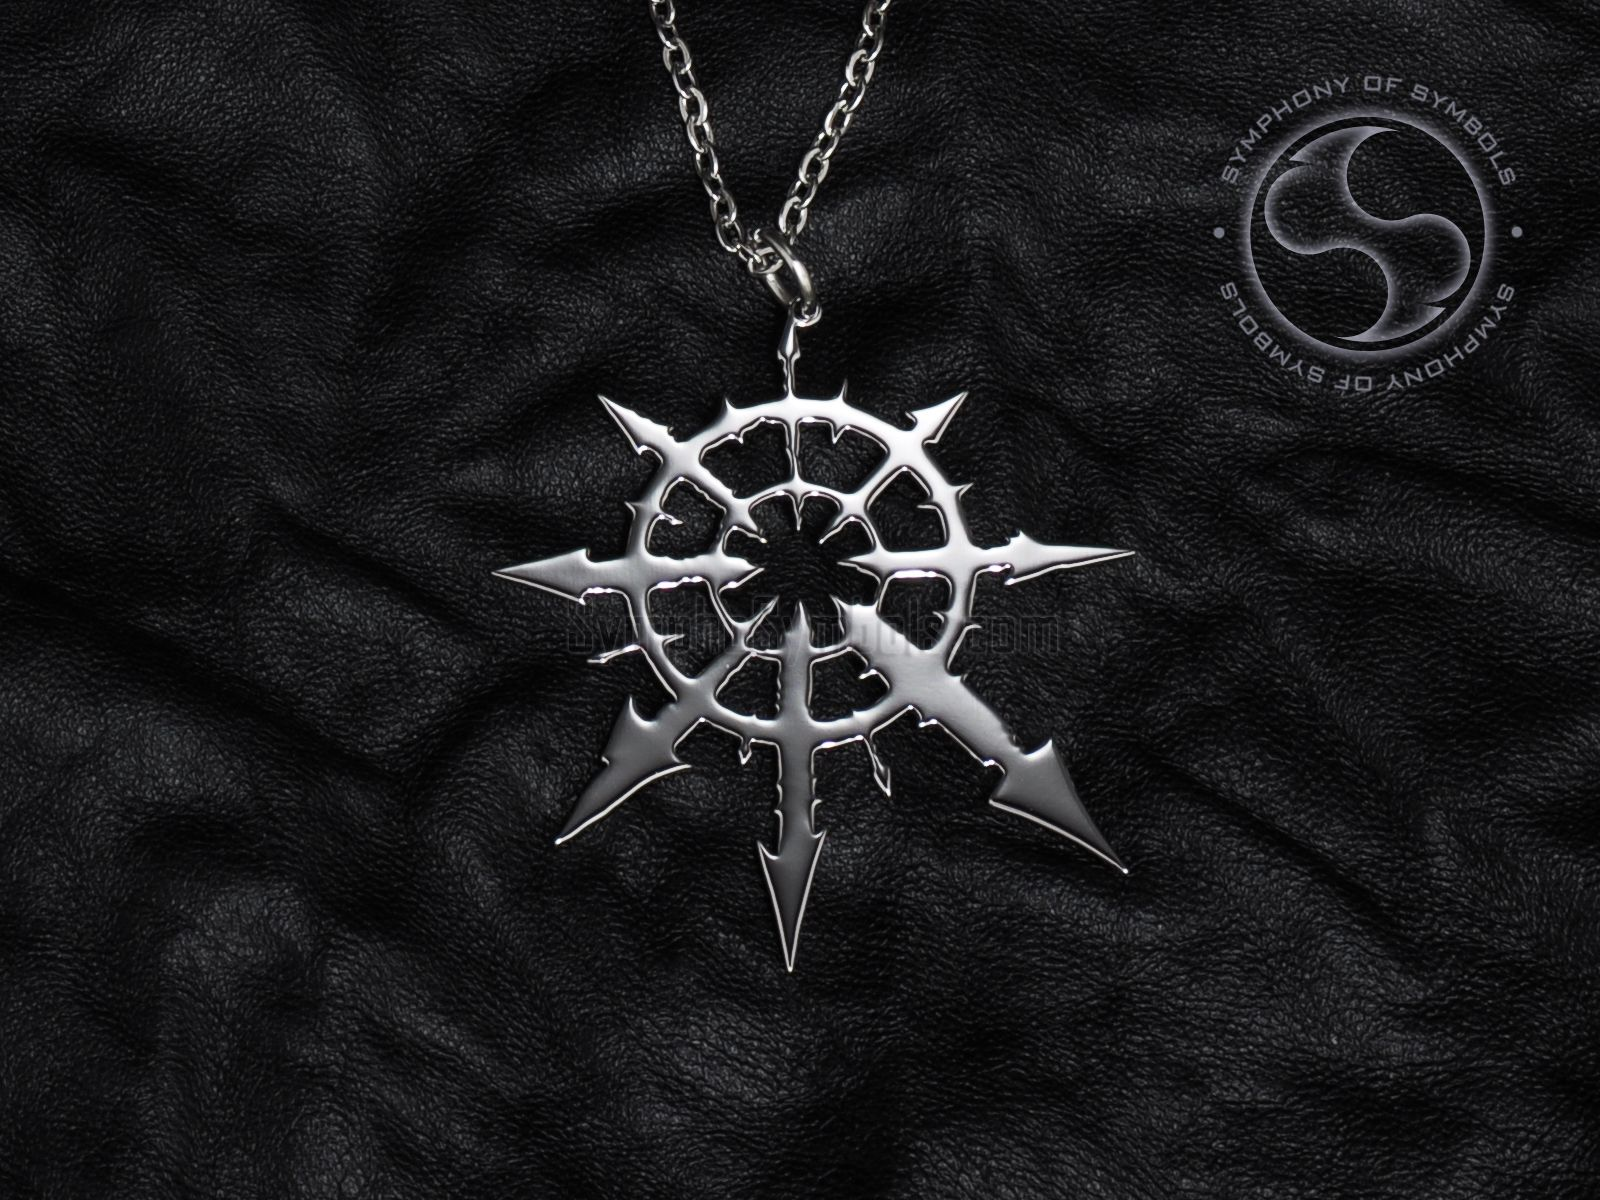 Chaos star symbol pendant stainless steel jewelry chaos cross chaos star symbol pendant stainless steel jewelry chaos cross necklace keychain chaosphere logo eight pointed aloadofball Gallery